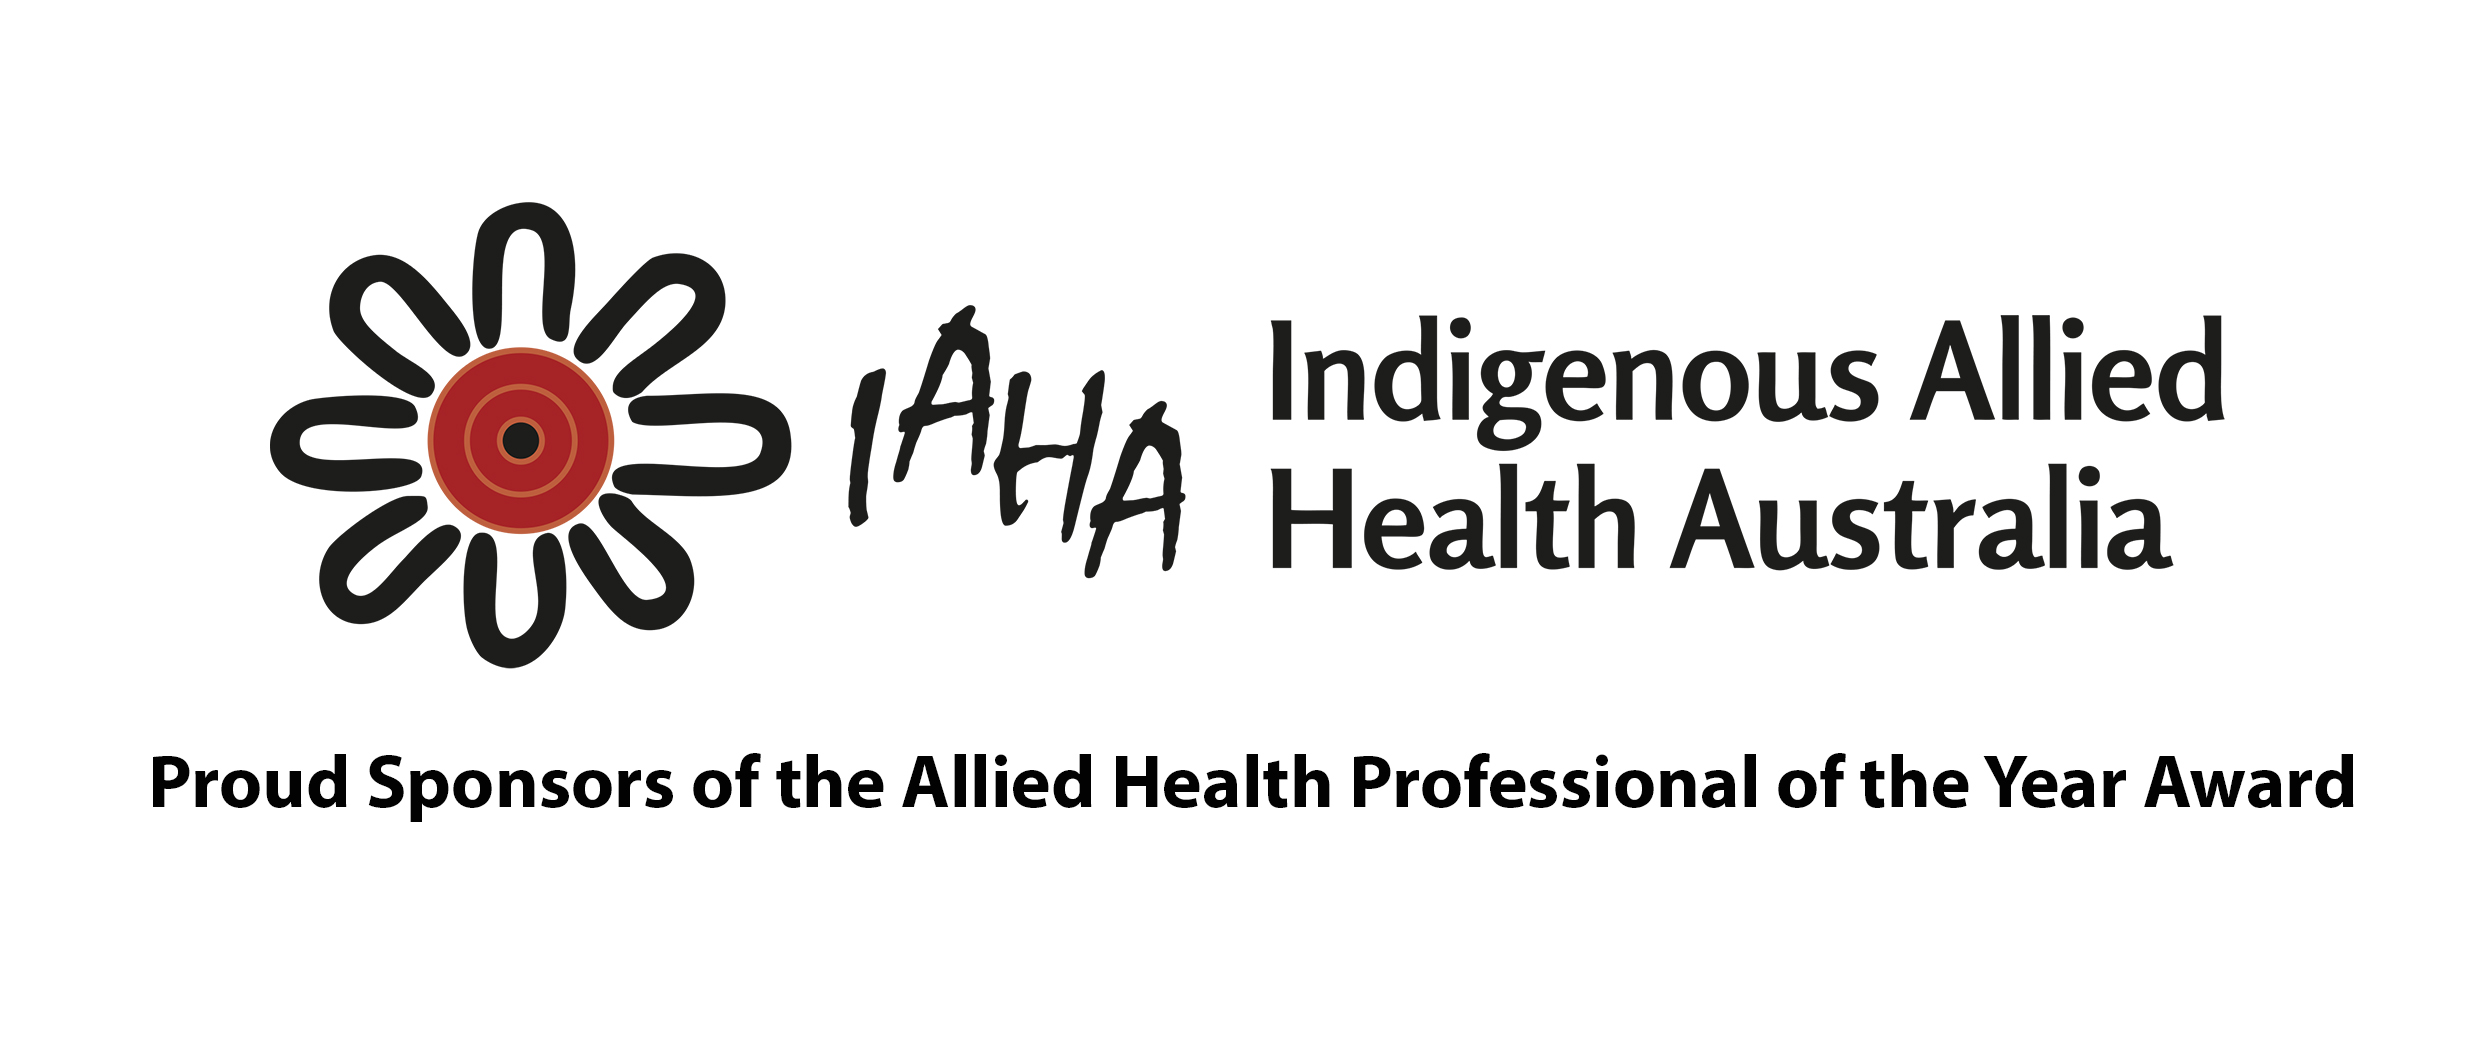 IAHA Indigenous Allied Health Australia Logo